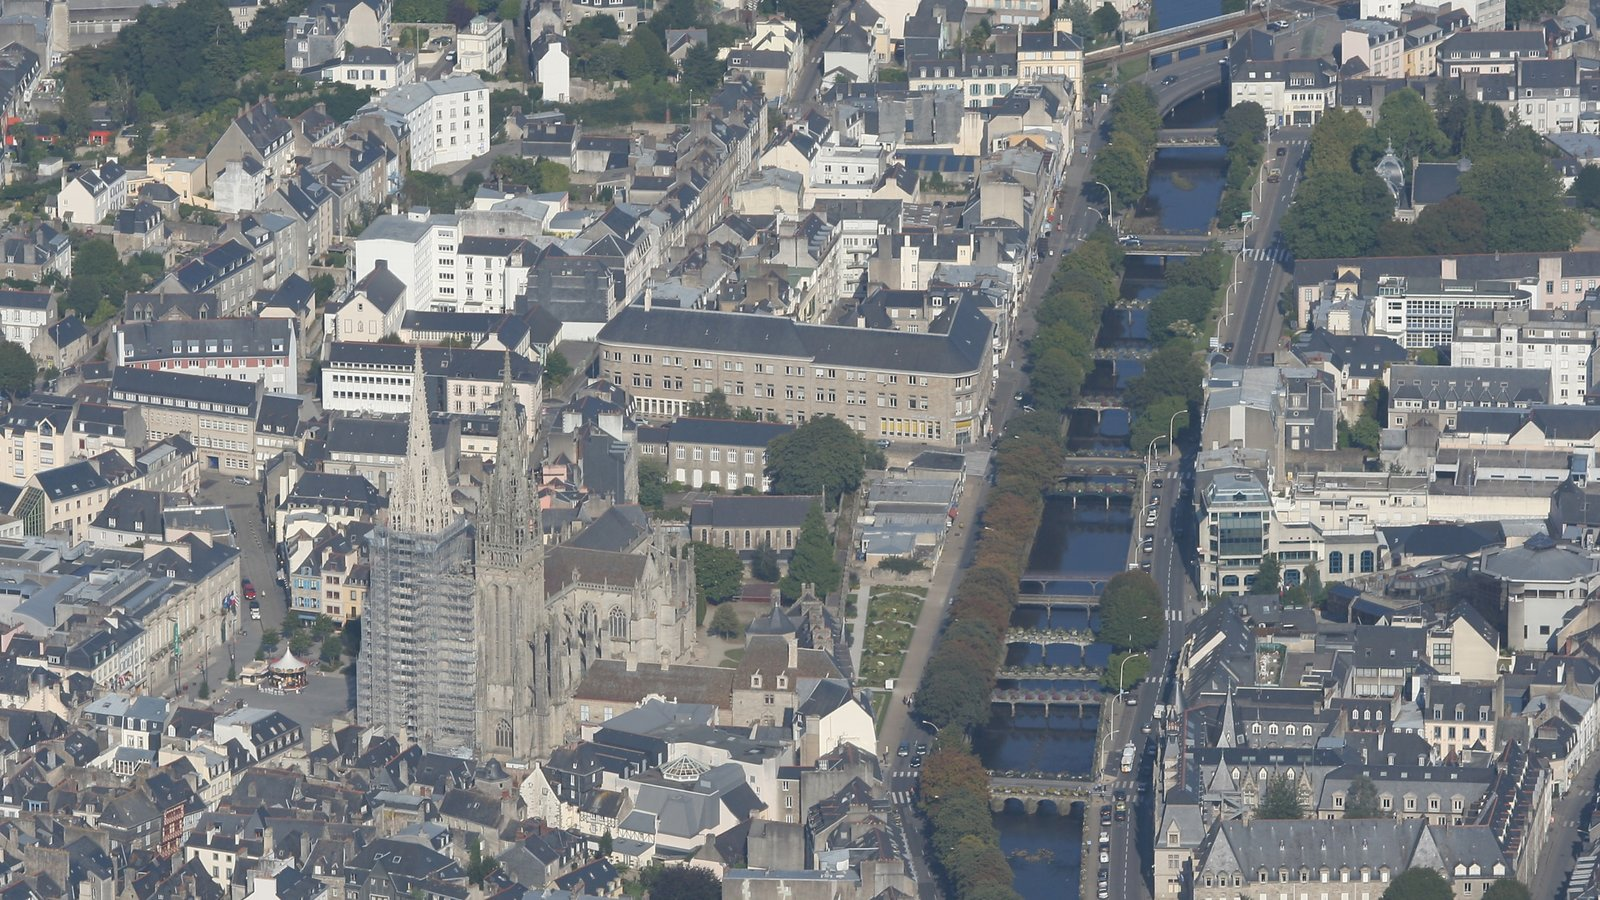 Quimper - Southern Finistere showing a bridge, a city and a bay or harbor